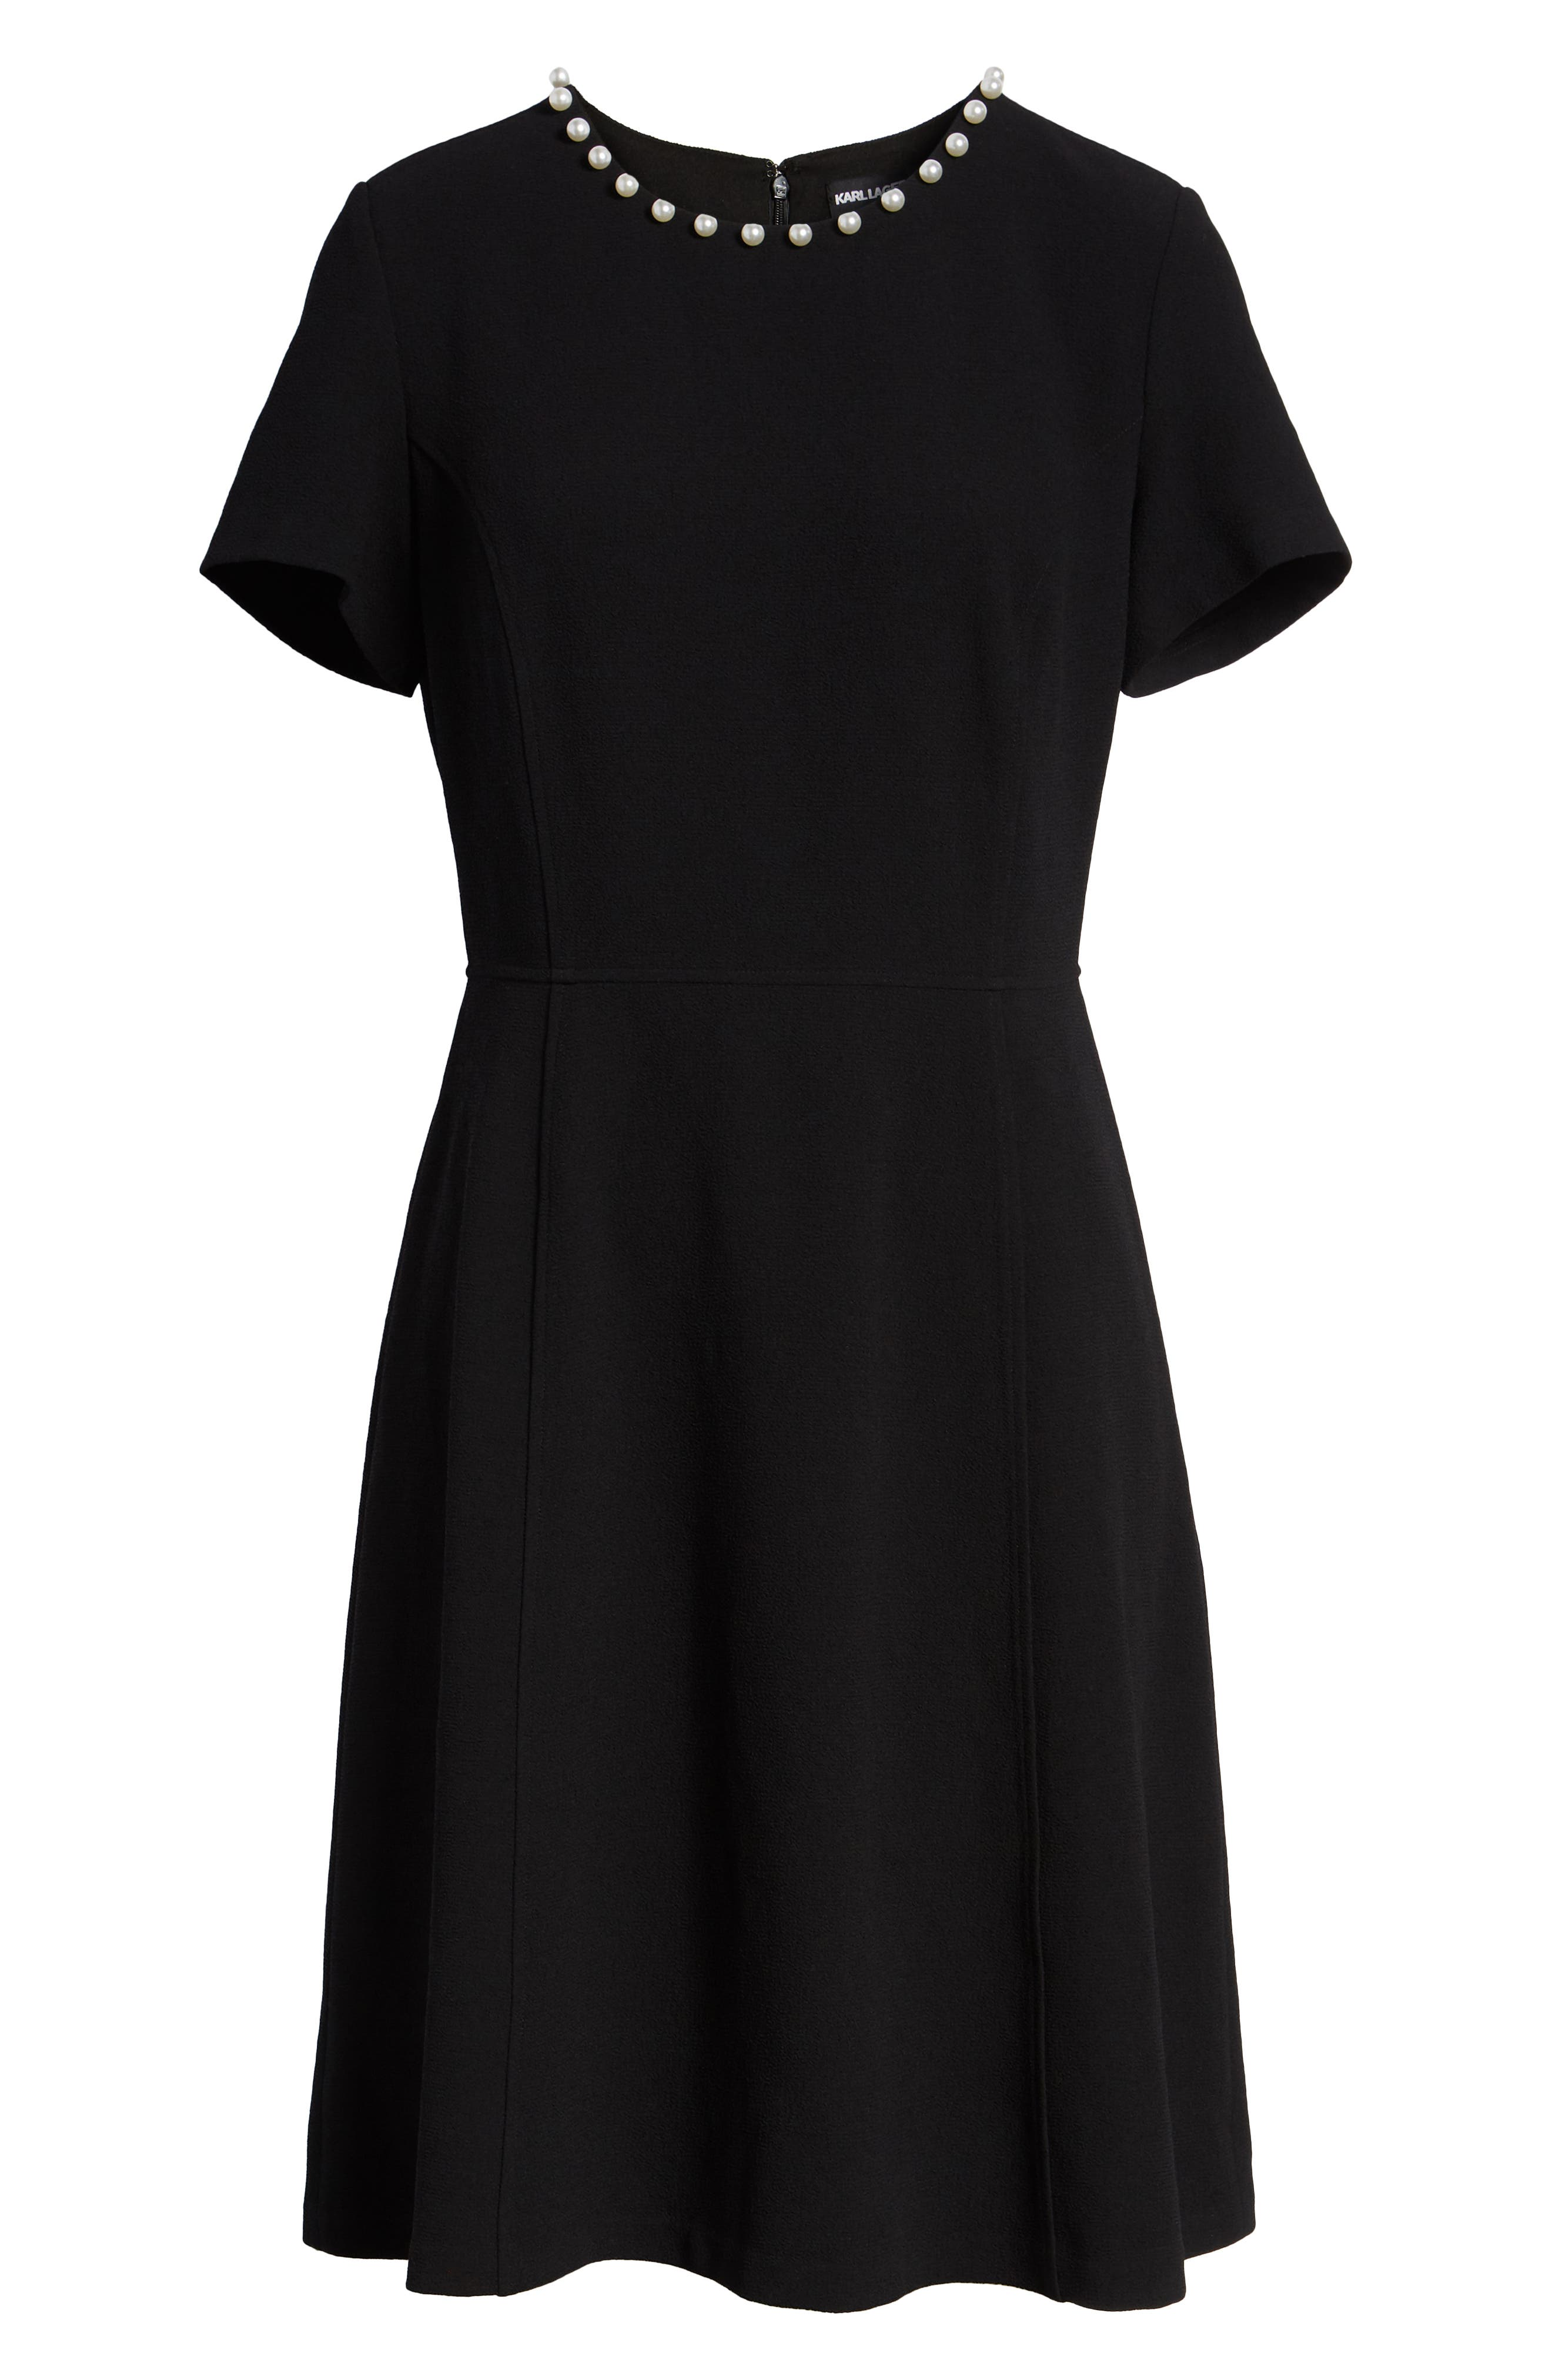 KARL LAGERFELD PARIS,                             Pearly Necklace Fit & Flare Dress,                             Alternate thumbnail 6, color,                             001